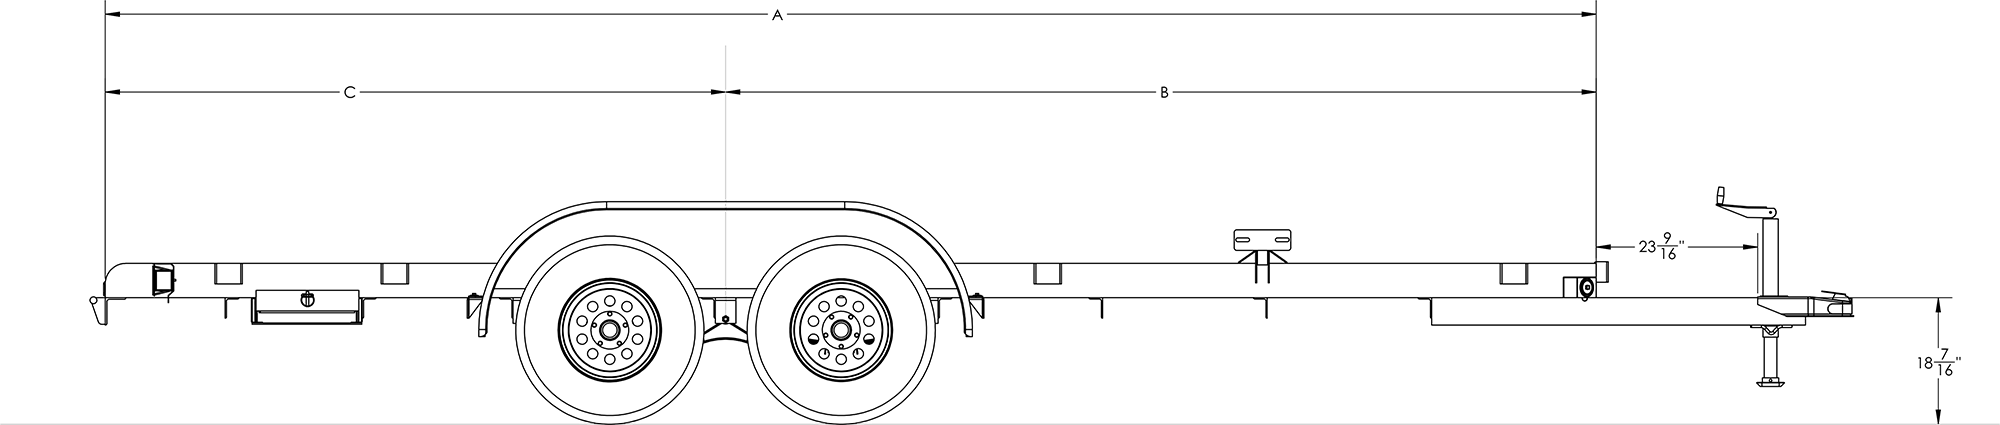 Line Drawing for Big Tex 16' Economy Style Car Hauler with Brakes on 2 Axles 60EC-16BK2B